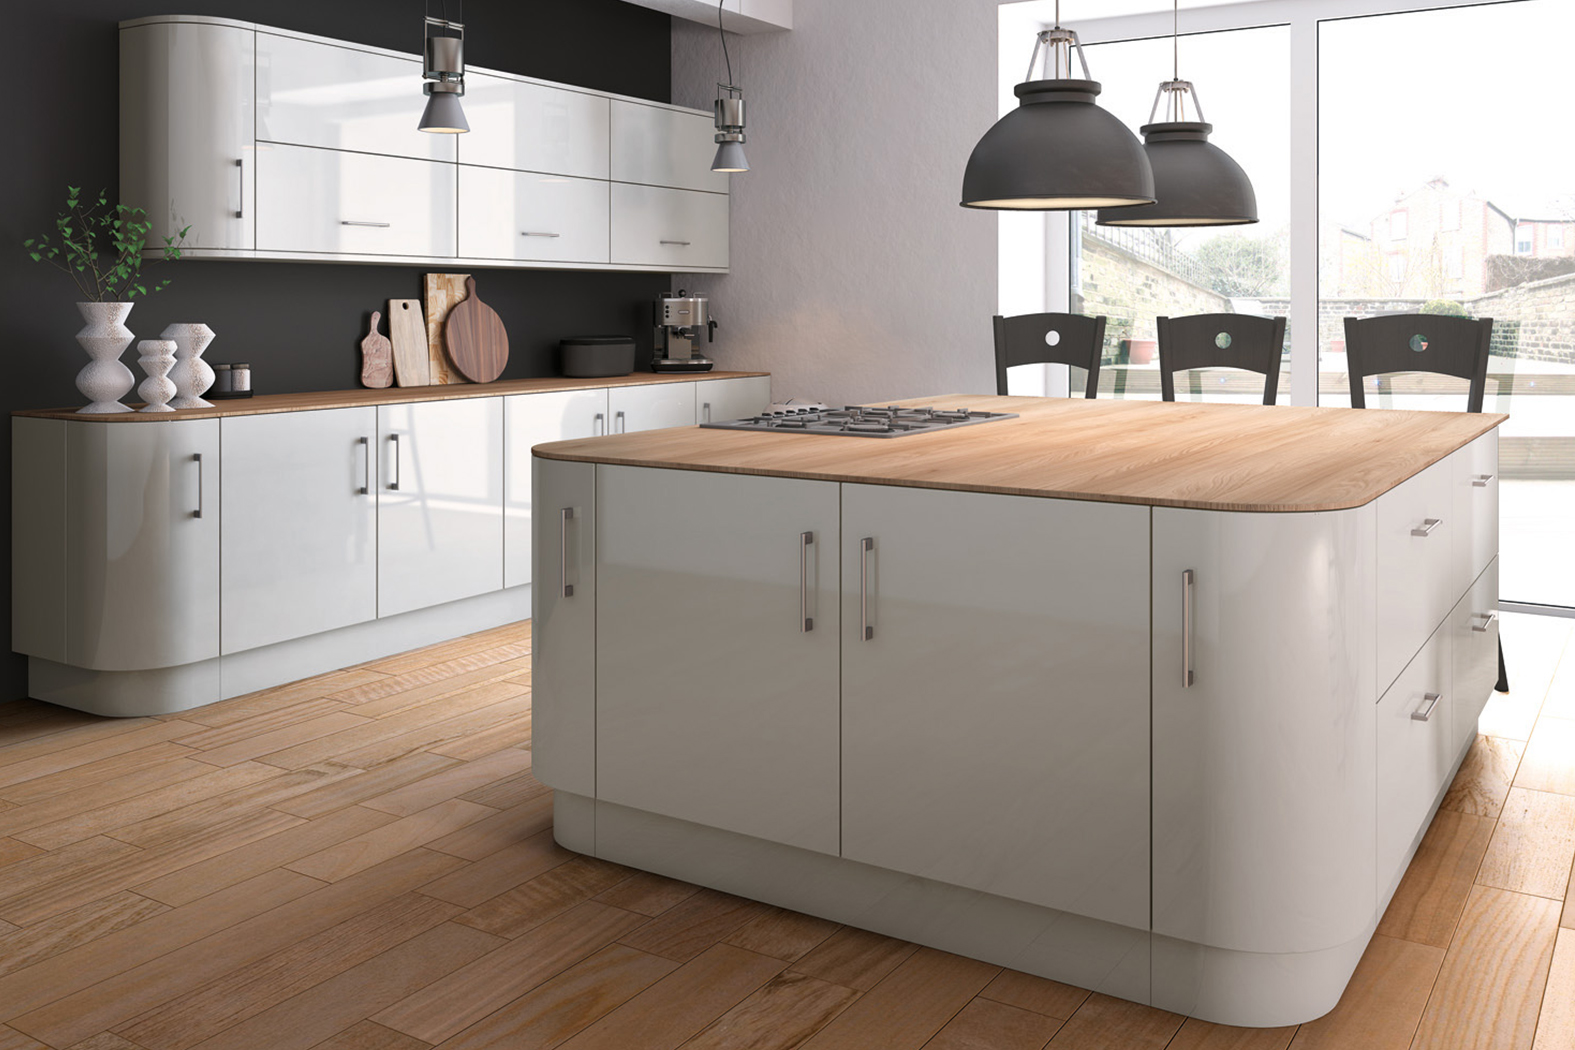 Light Grey : Cheap Kitchen Units and Cabinets for Sale ...